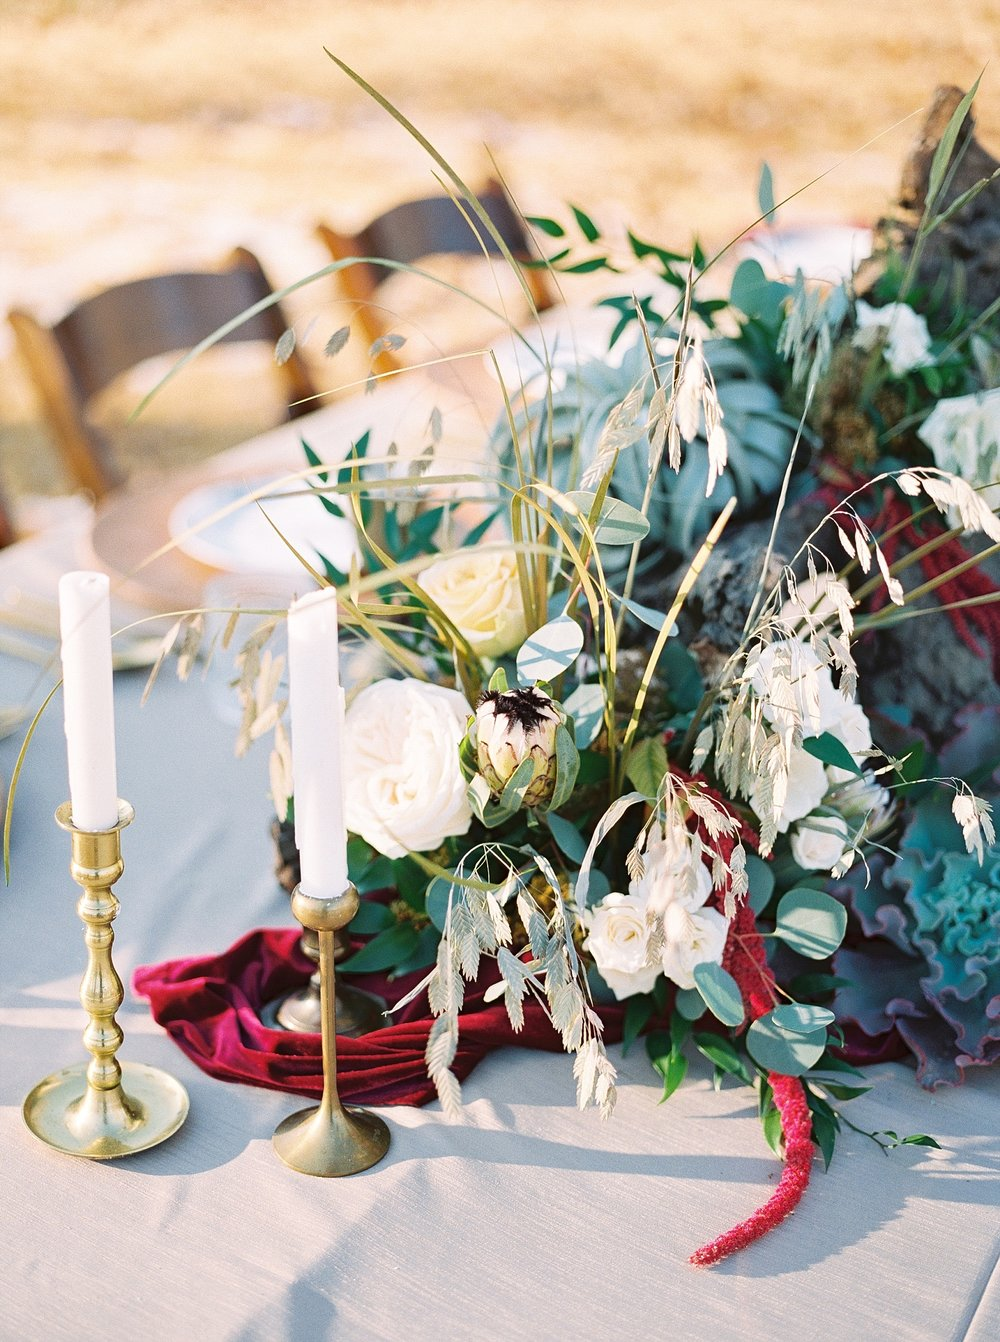 Snowy Winter Wedding at Wildcliff Events Lake With Earthy Jewel Tones and Organic Refined Style by Kelsi Kliethermes Photography Kansas City Missouri Wedding Photographer_0159.jpg